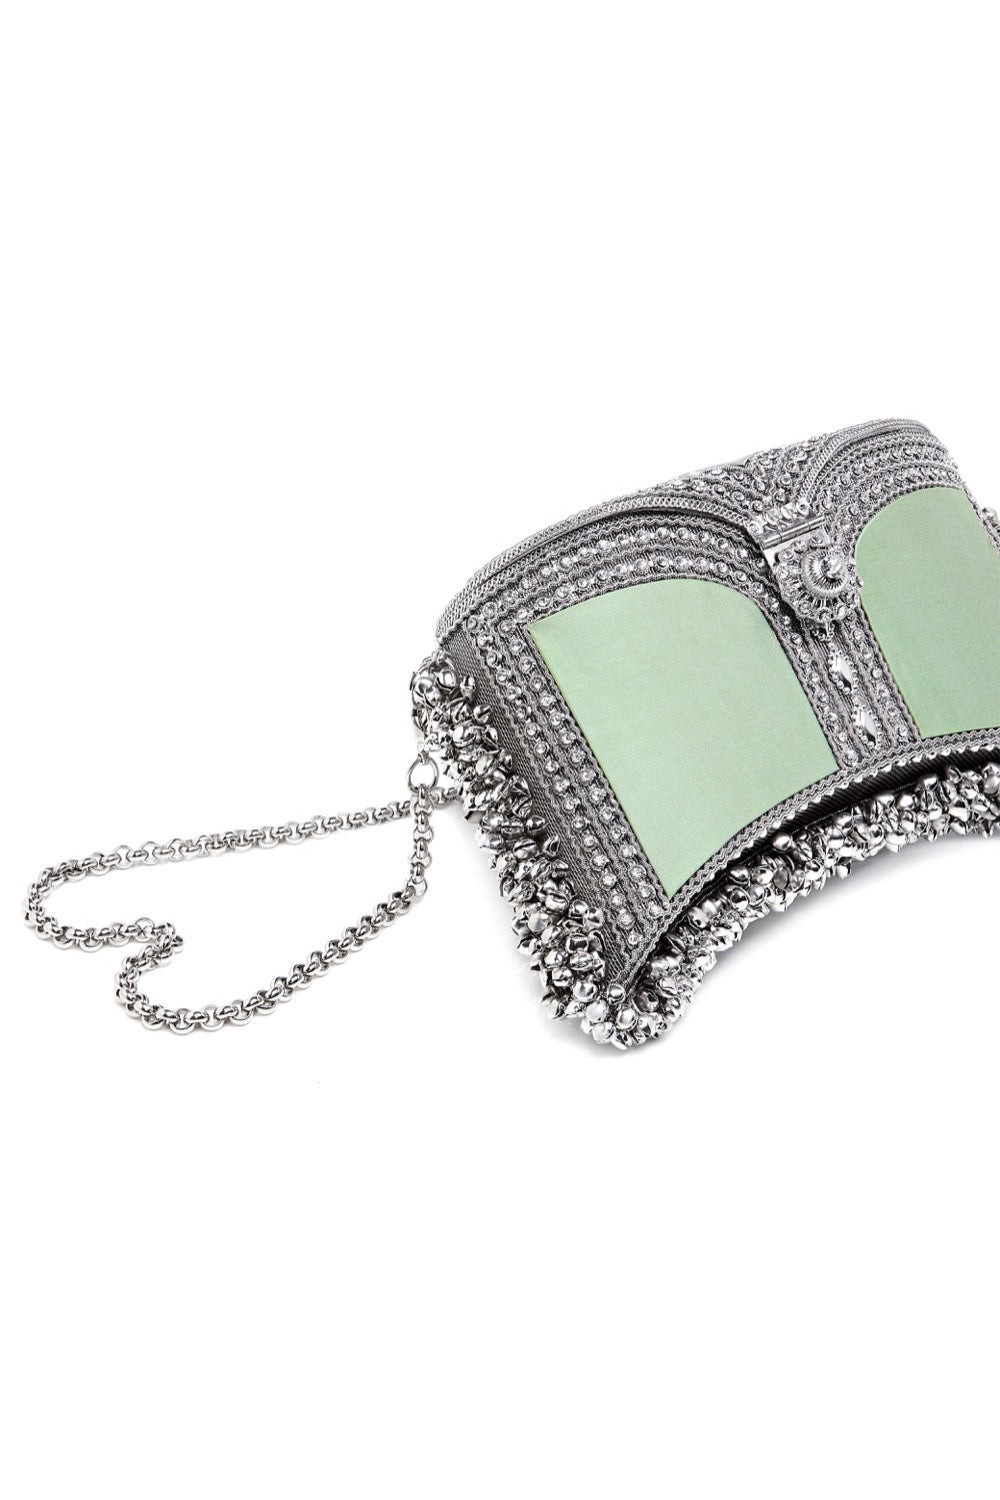 Mae Cassidy Zeenat Botanical Mint Silver Clutch Bag. Modelled by Emma Laird. Photography by Annie Lai.